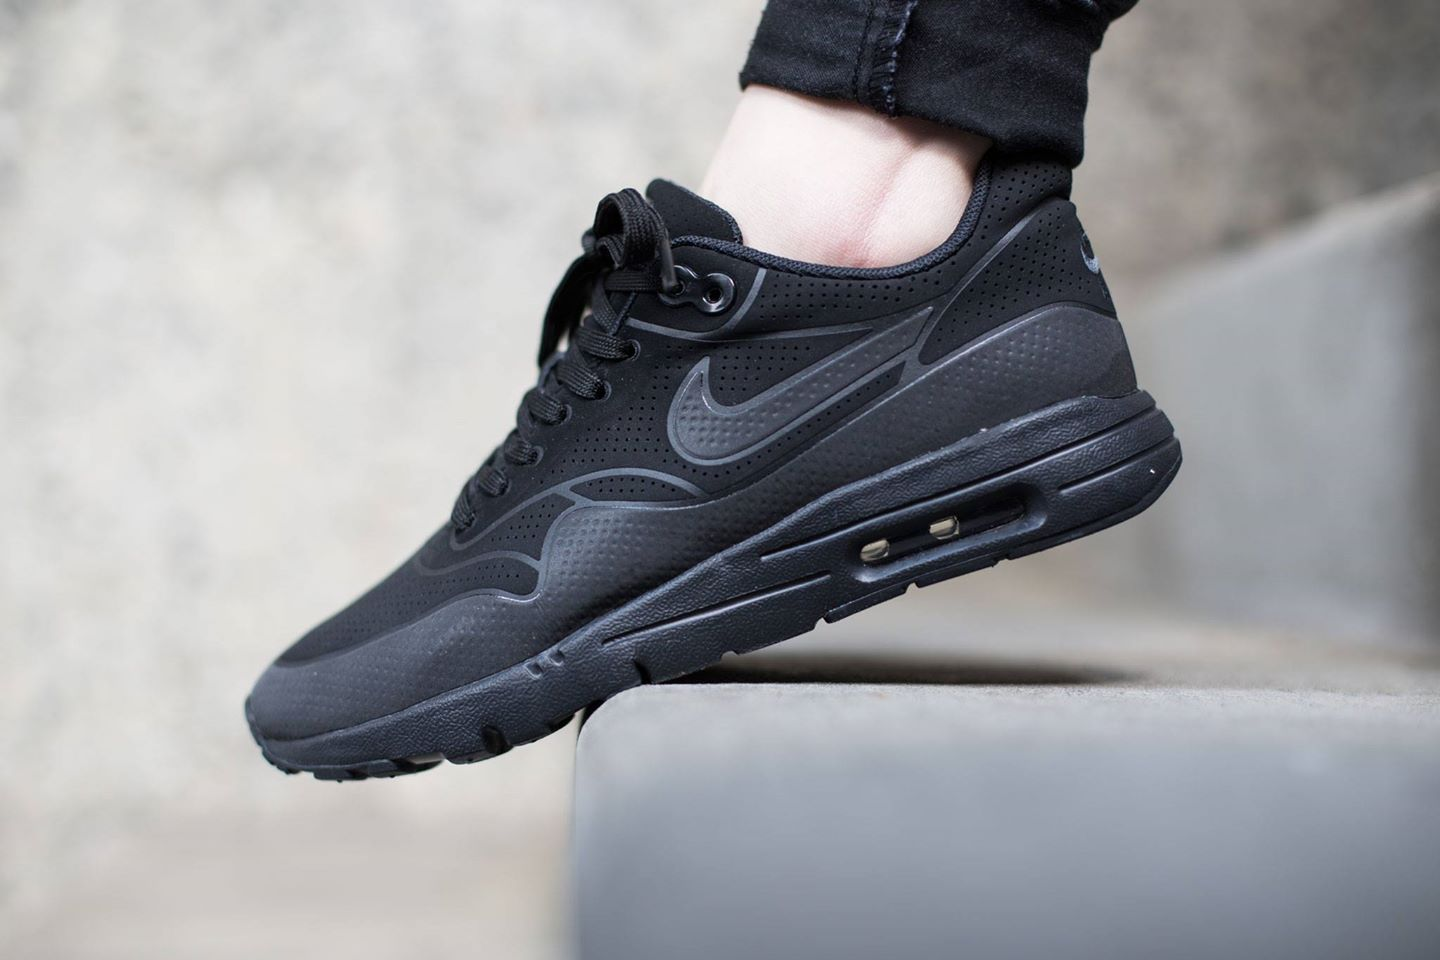 Où acheter la Nike Air Max 1 Ultra Moire Black Anthracite ?